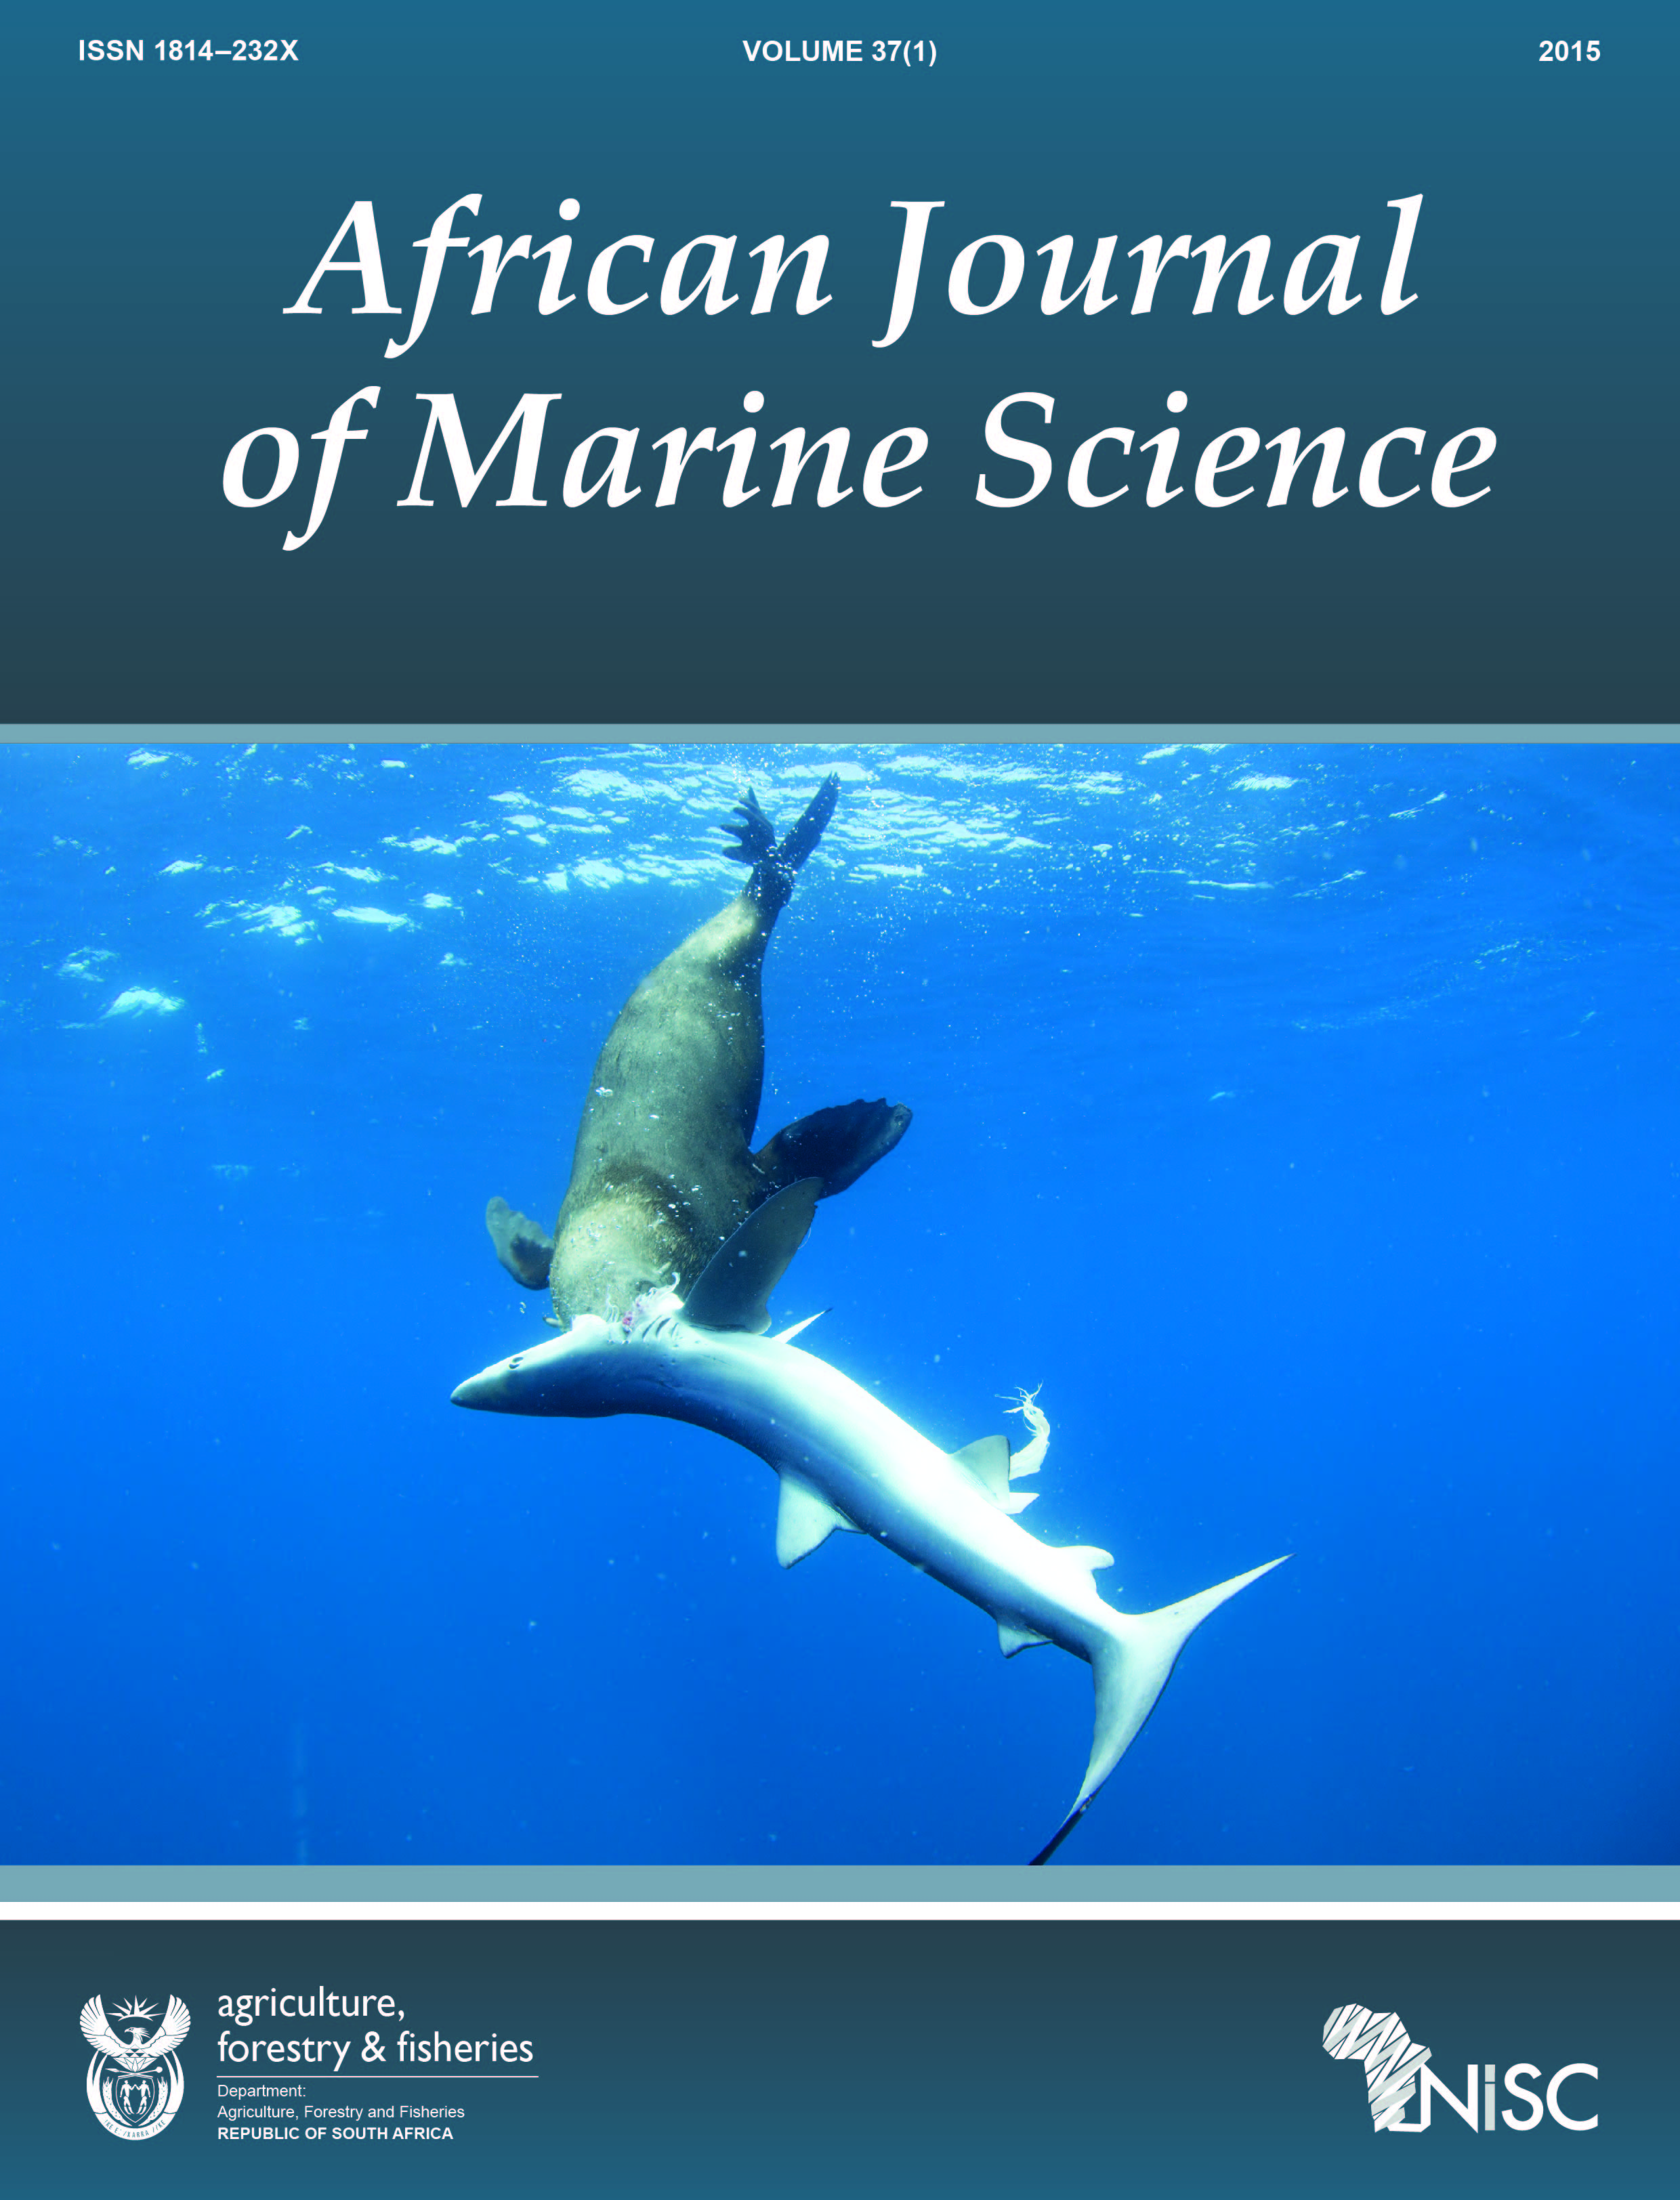 marine biology research paper topics marine bio research paper topics research paper on lasik dolphin echolocation apparatus from living waters illustra